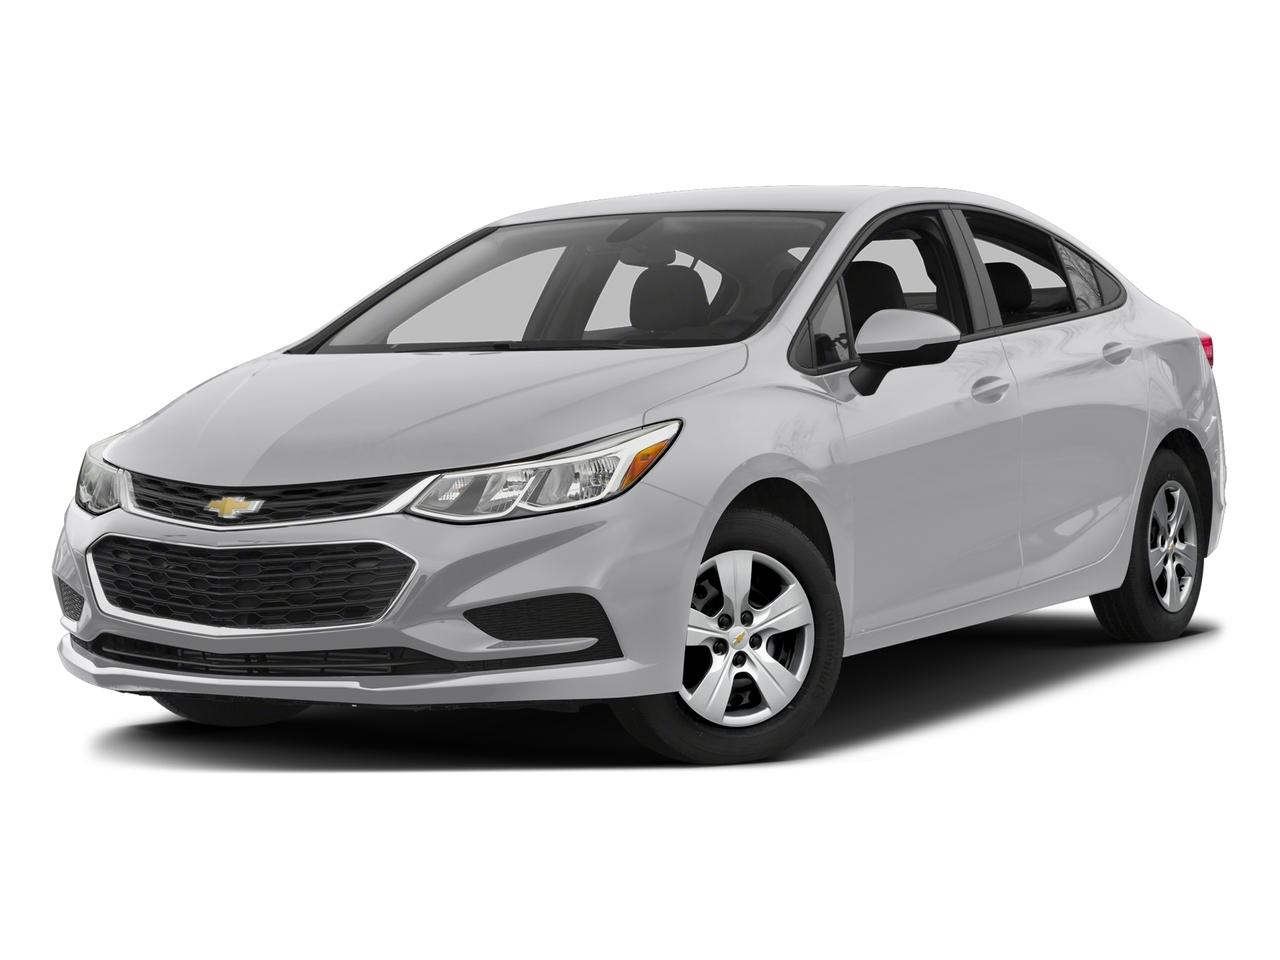 2017 Chevrolet Cruze Vehicle Photo in San Antonio, TX 78254